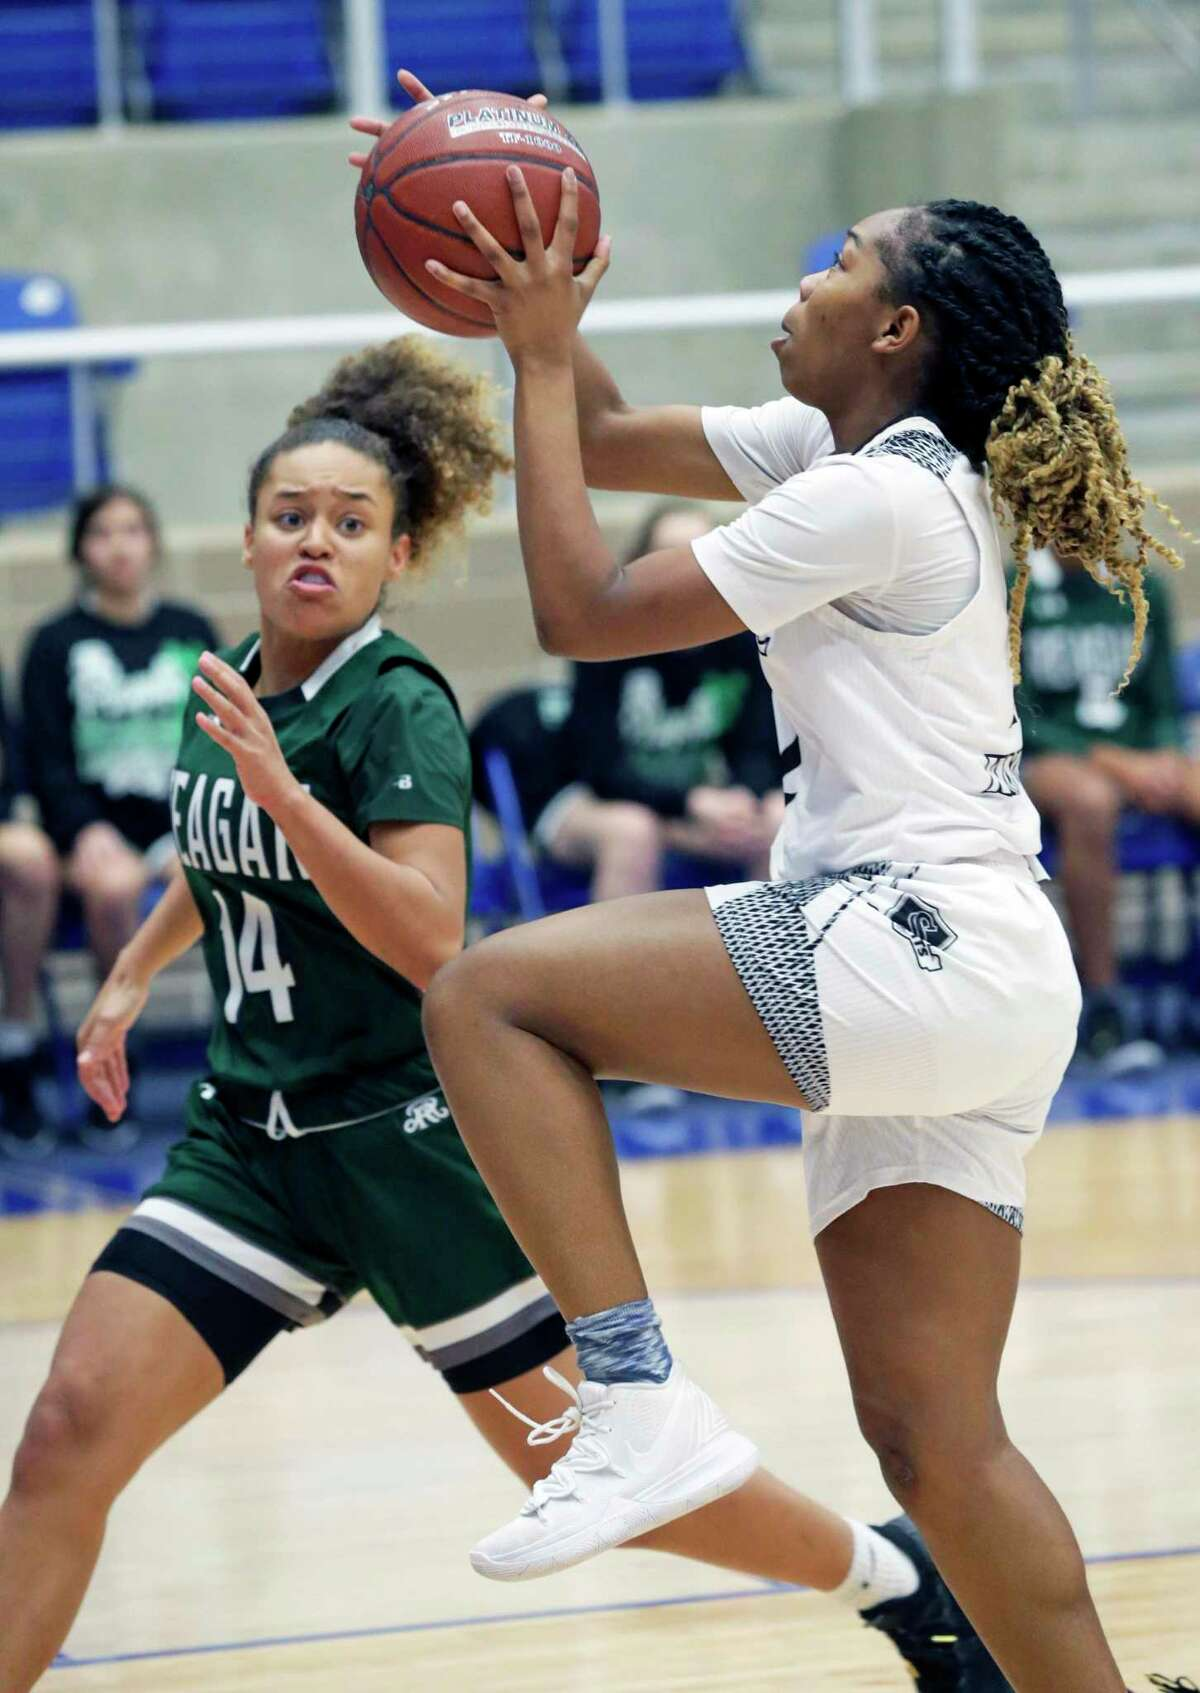 Lady Knight guard Aaliyah Ellis gets to the hoop before Nadja Wilson as Steele plays Reagan and Wagner plays Sam Houston in a girls basketball playoff double header at Northside Gym on Feb. 21, 2020.